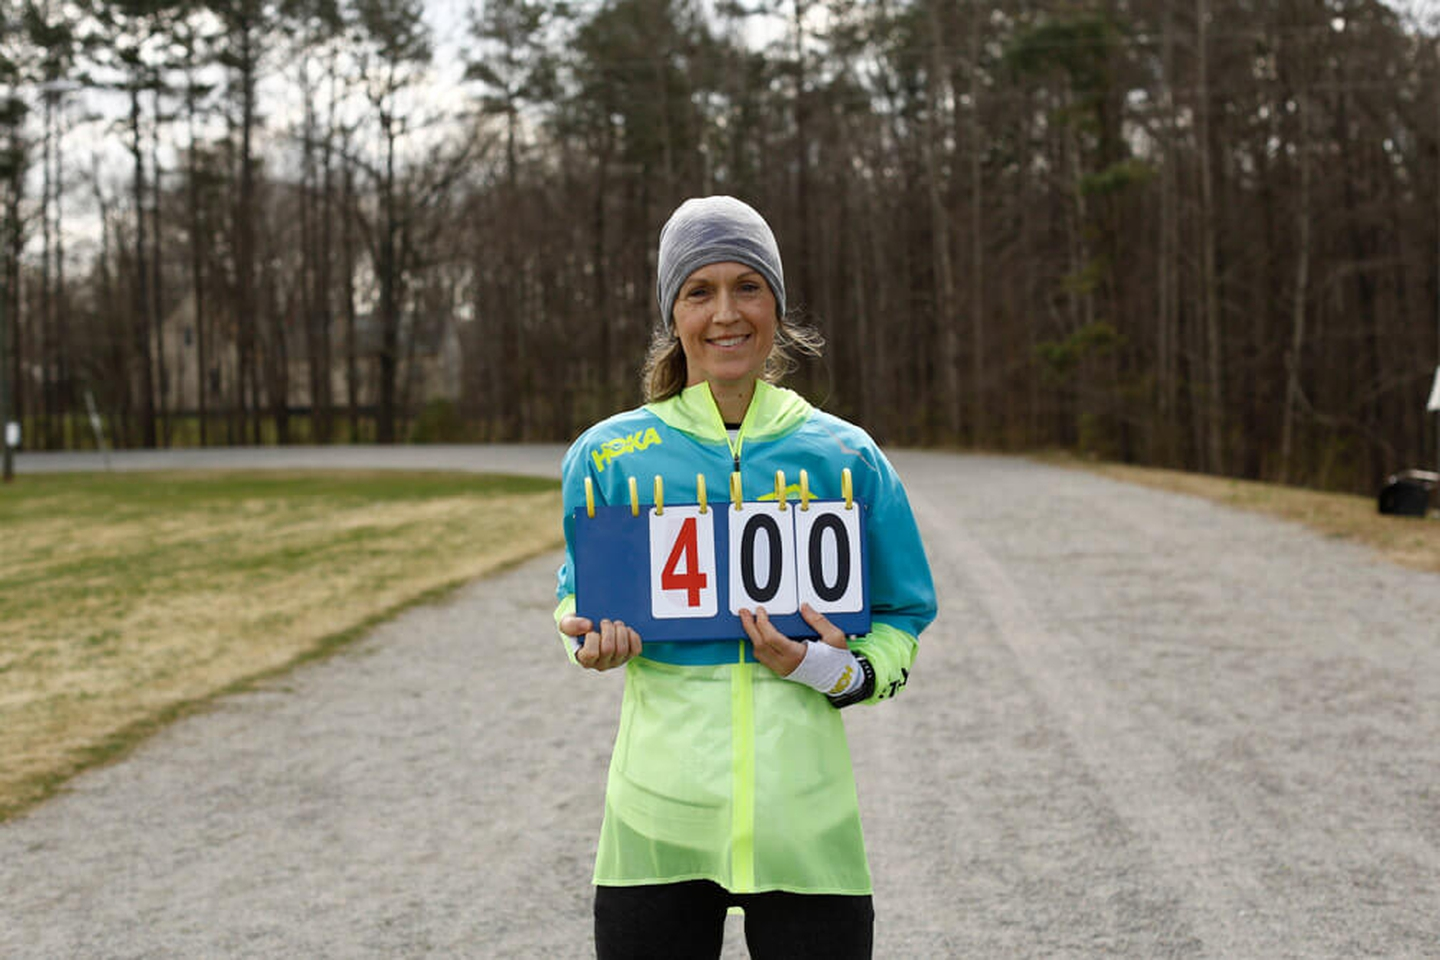 woman in running gear holding a counter sign